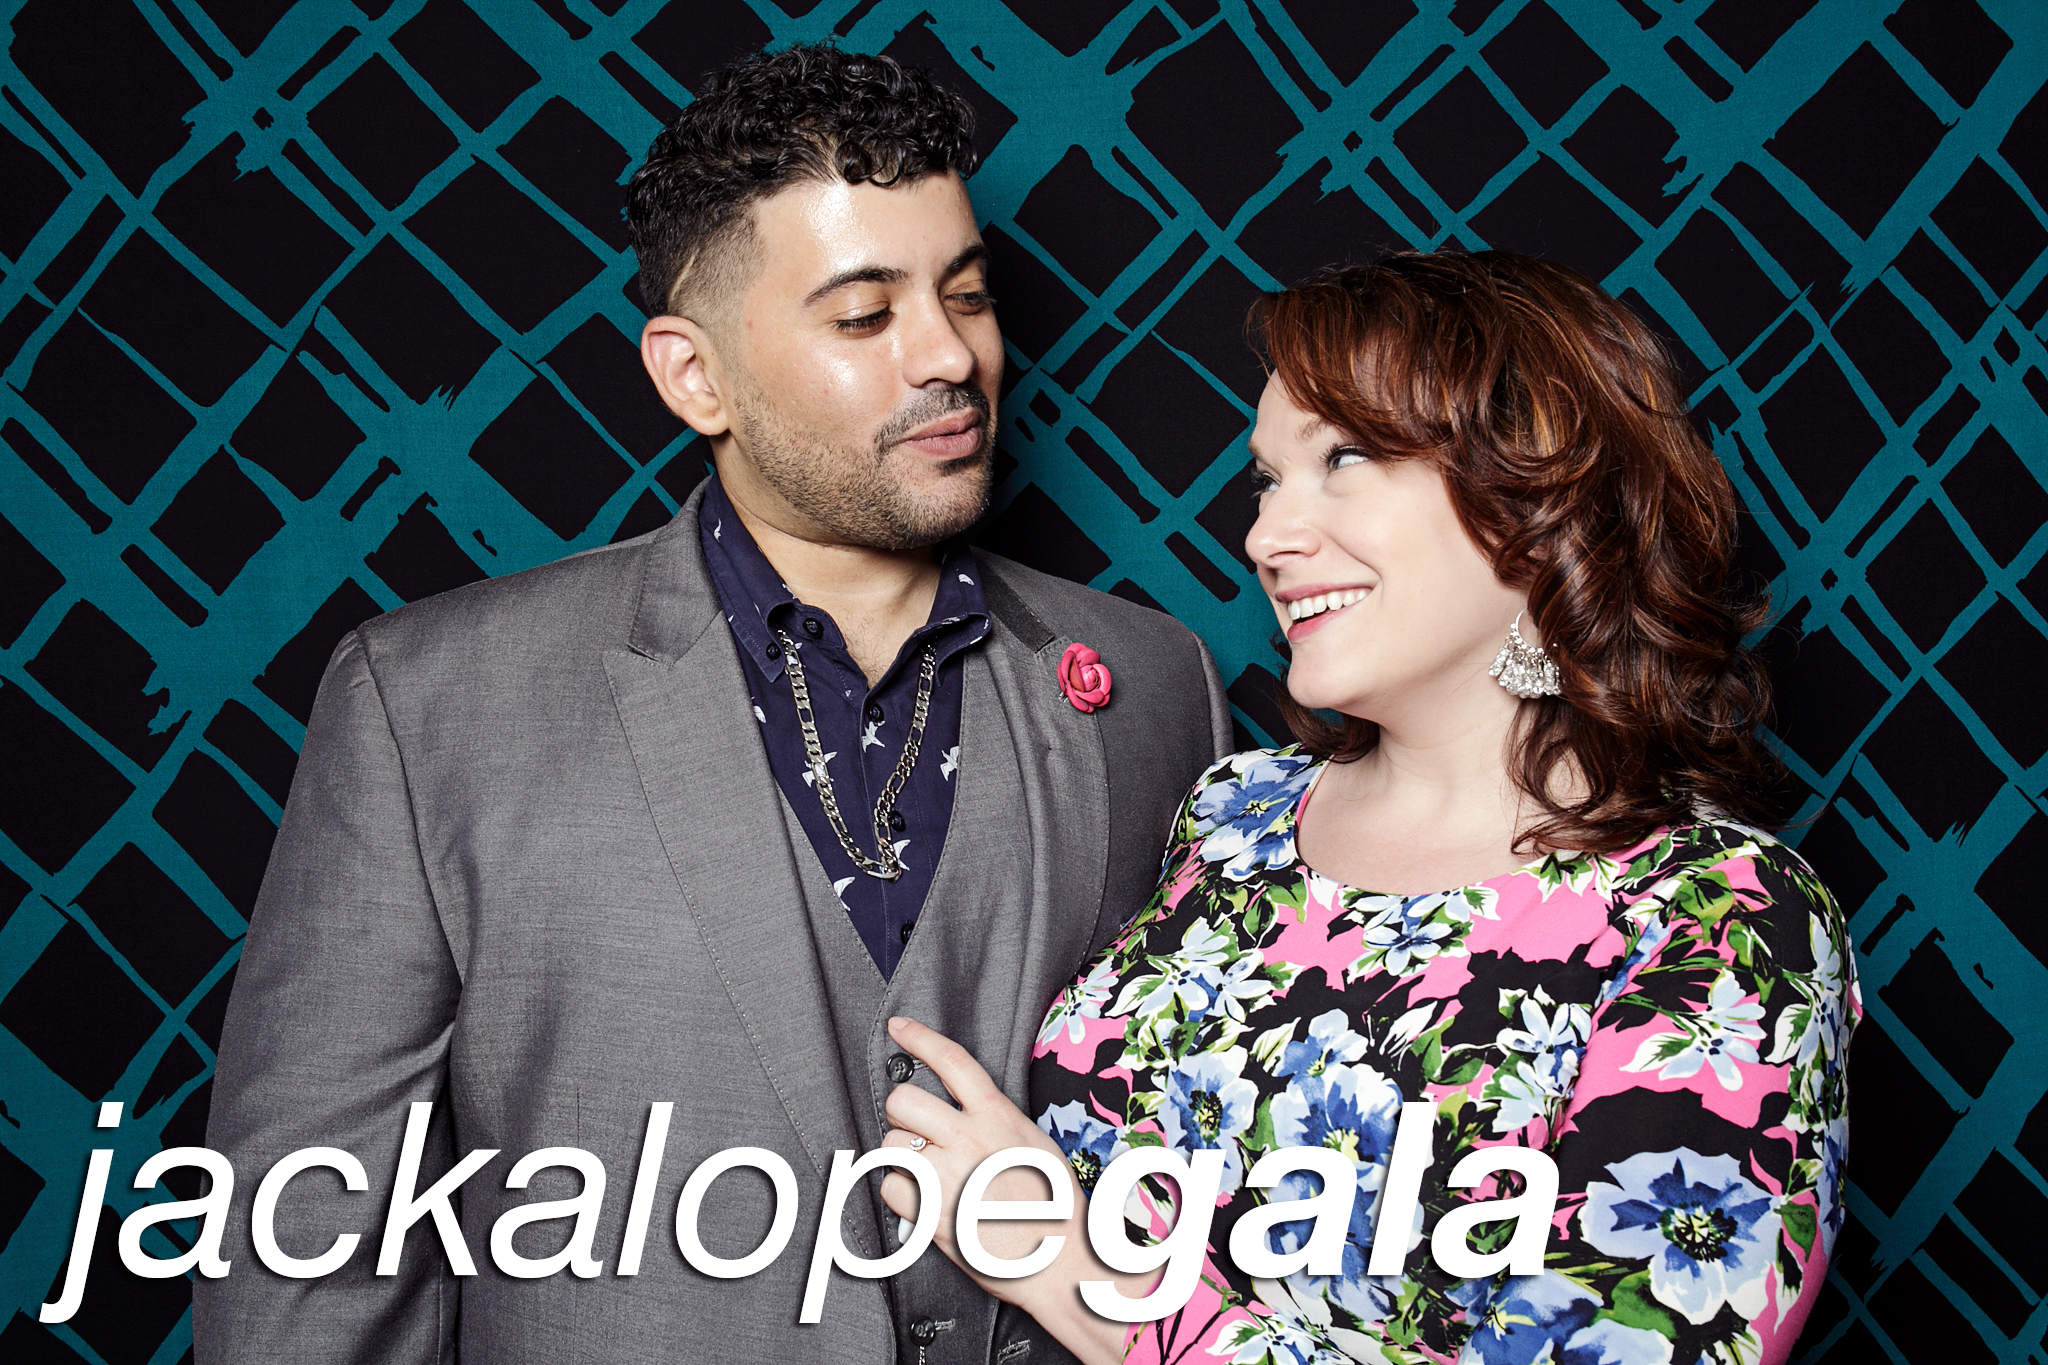 glitterguts portrait booth photos from jackalope theatre's 2019 gala in chicago